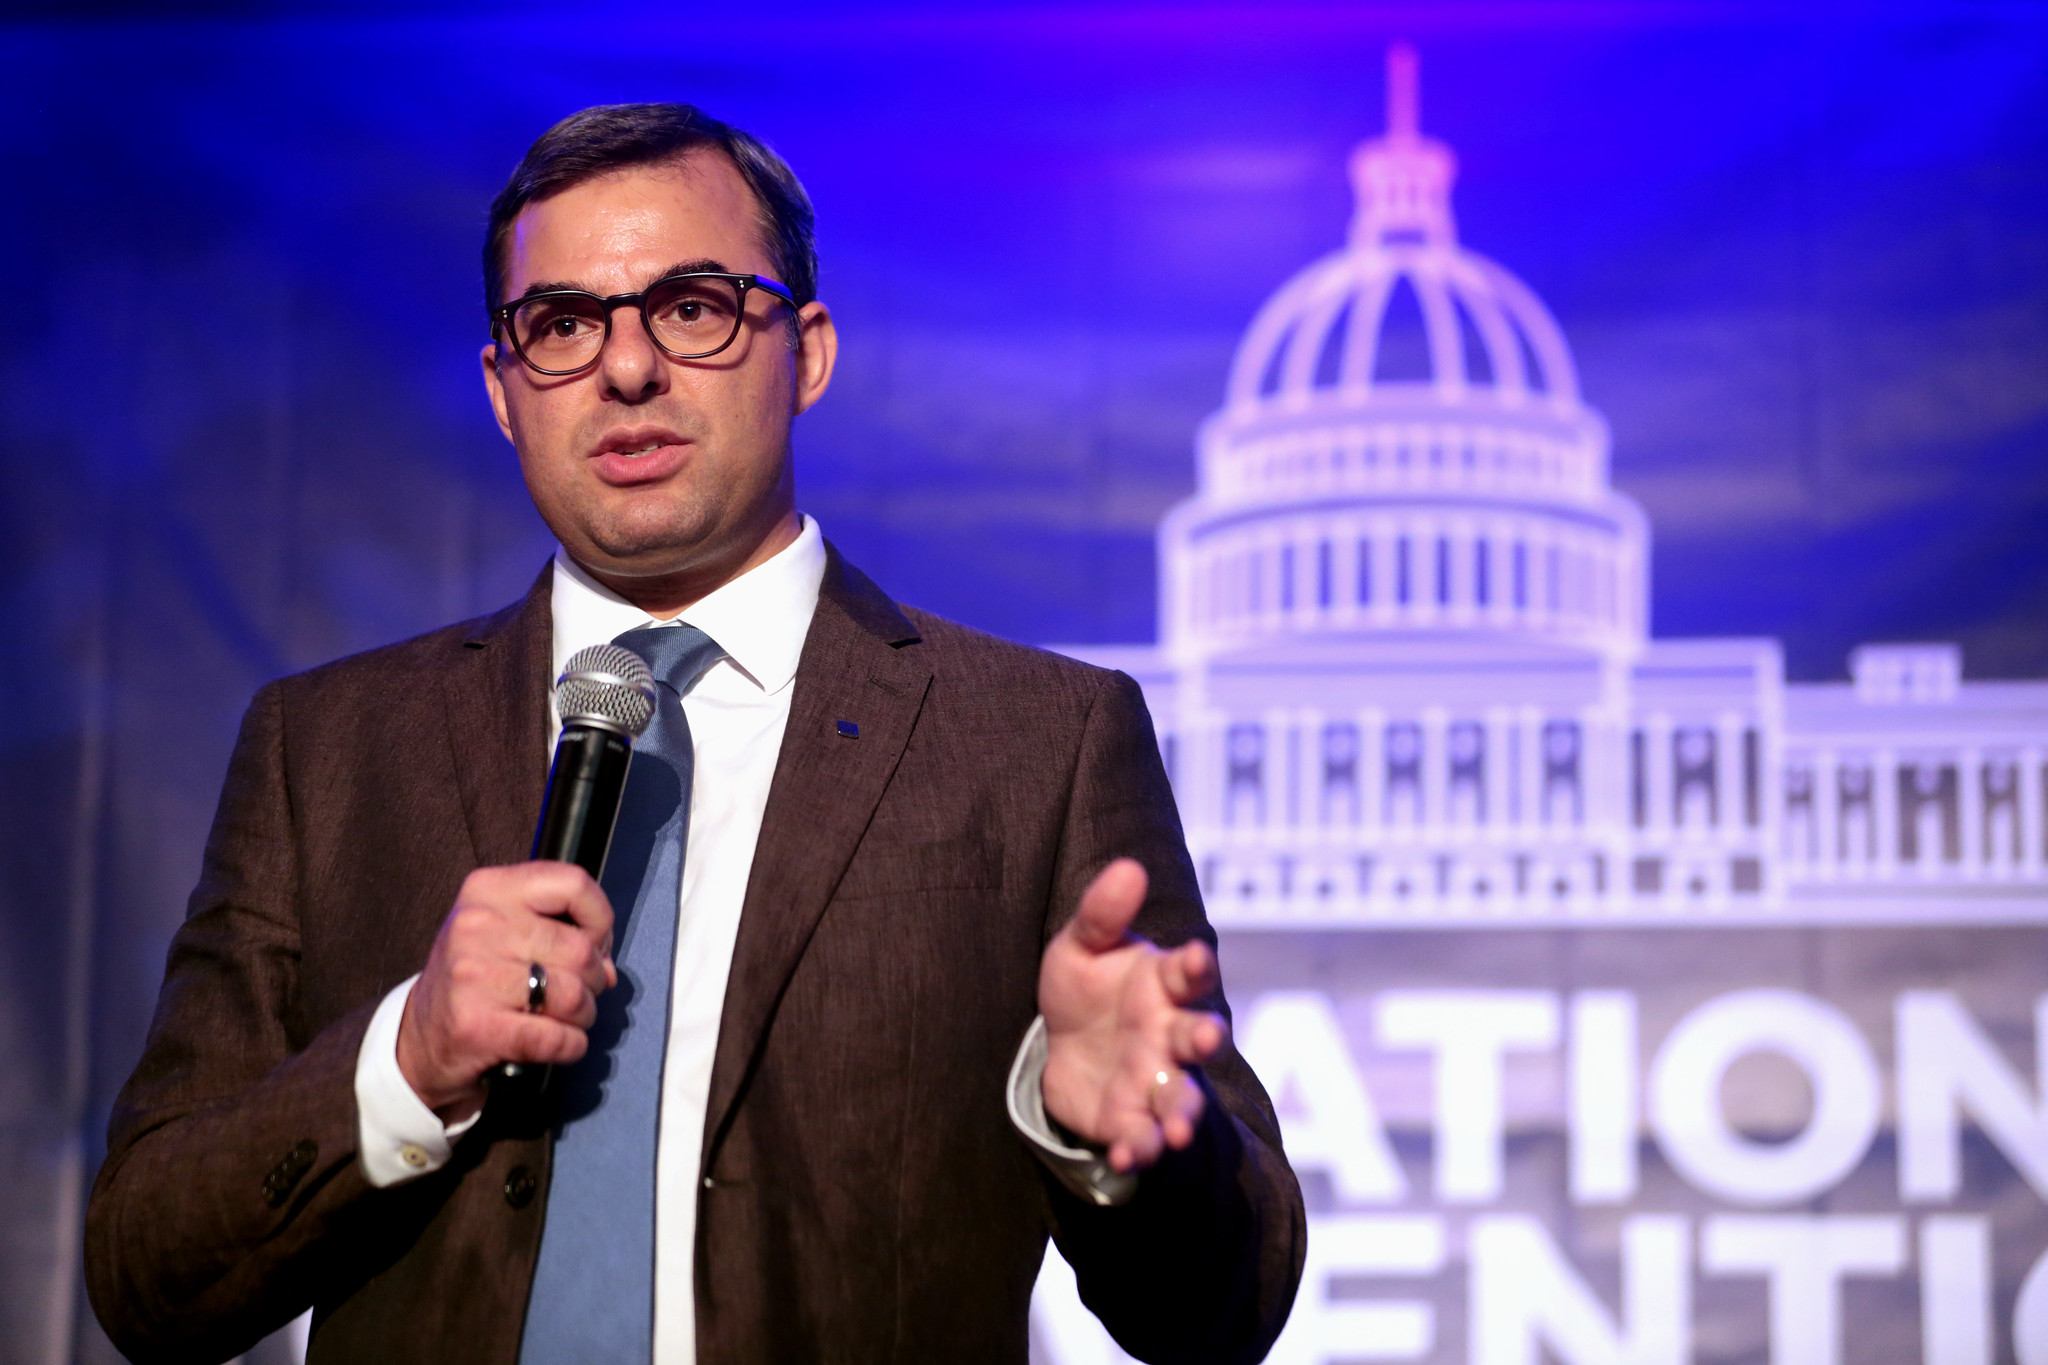 Rep. Amash Looking 'Closely' at Challenging Trump as an Independent | National Review